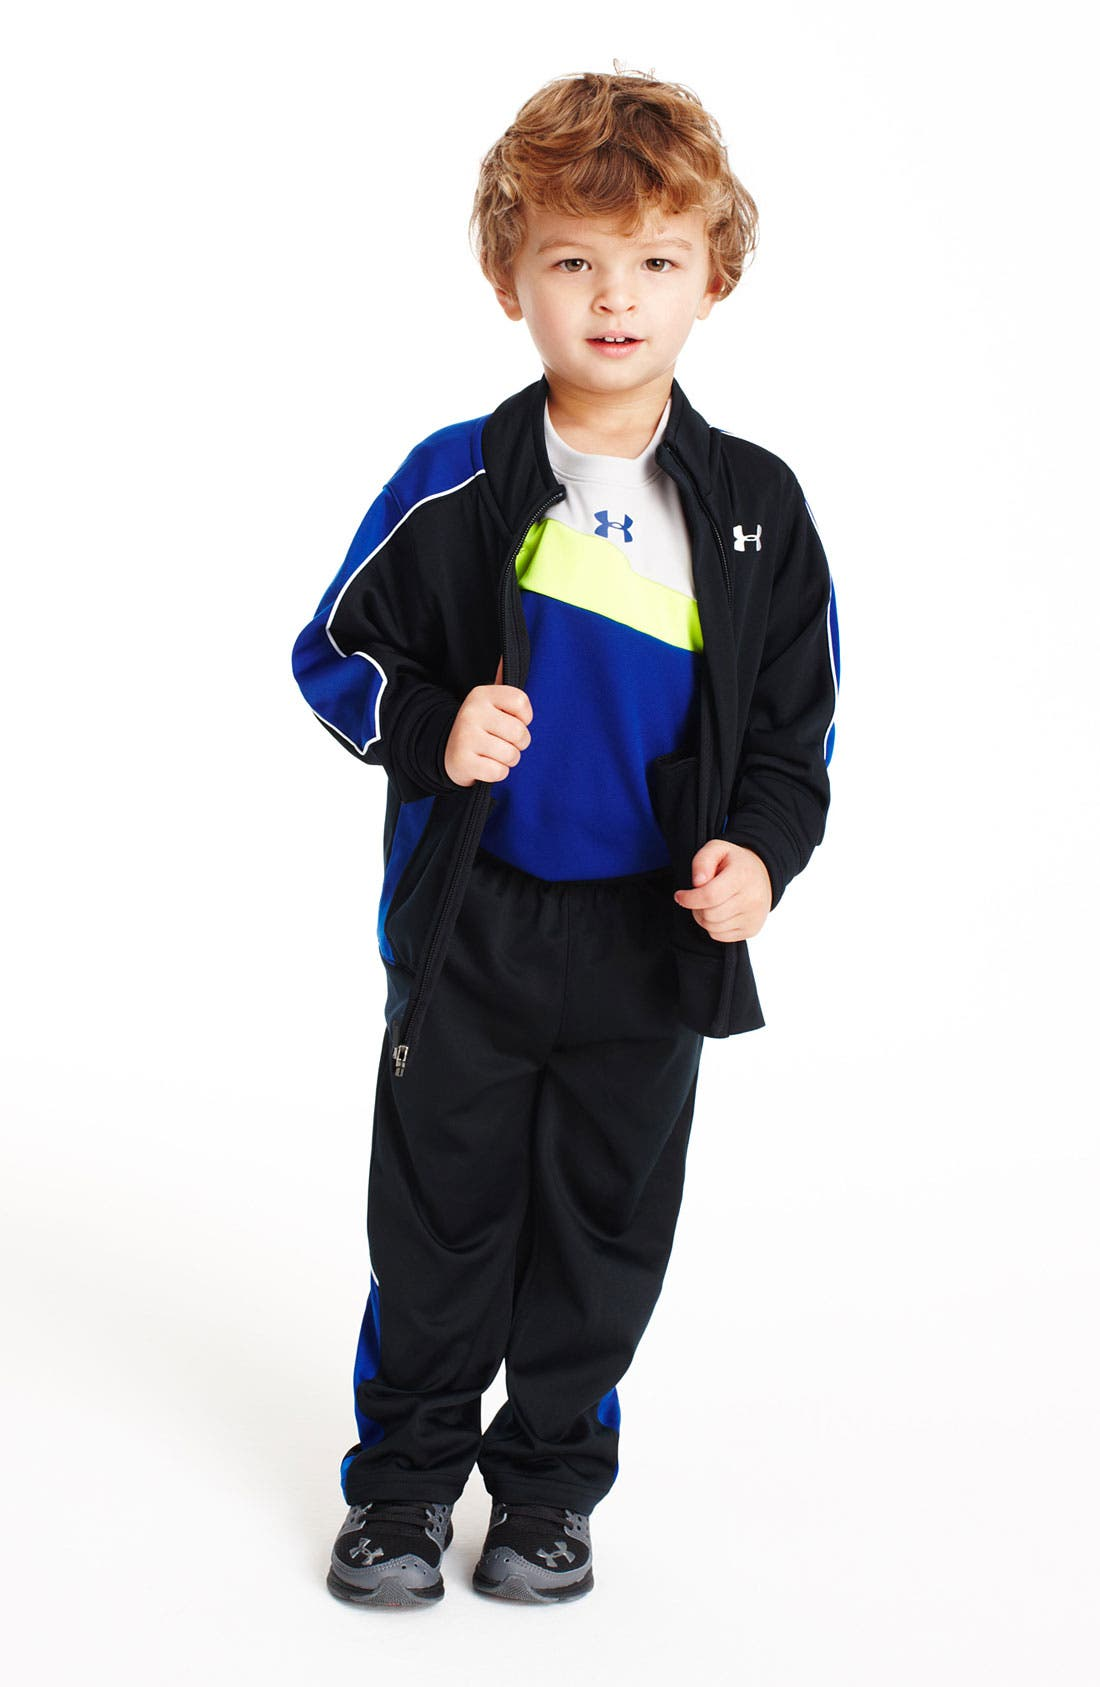 Main Image - Under Armour T-Shirt, Jacket, Pants & Sneaker (Toddler)